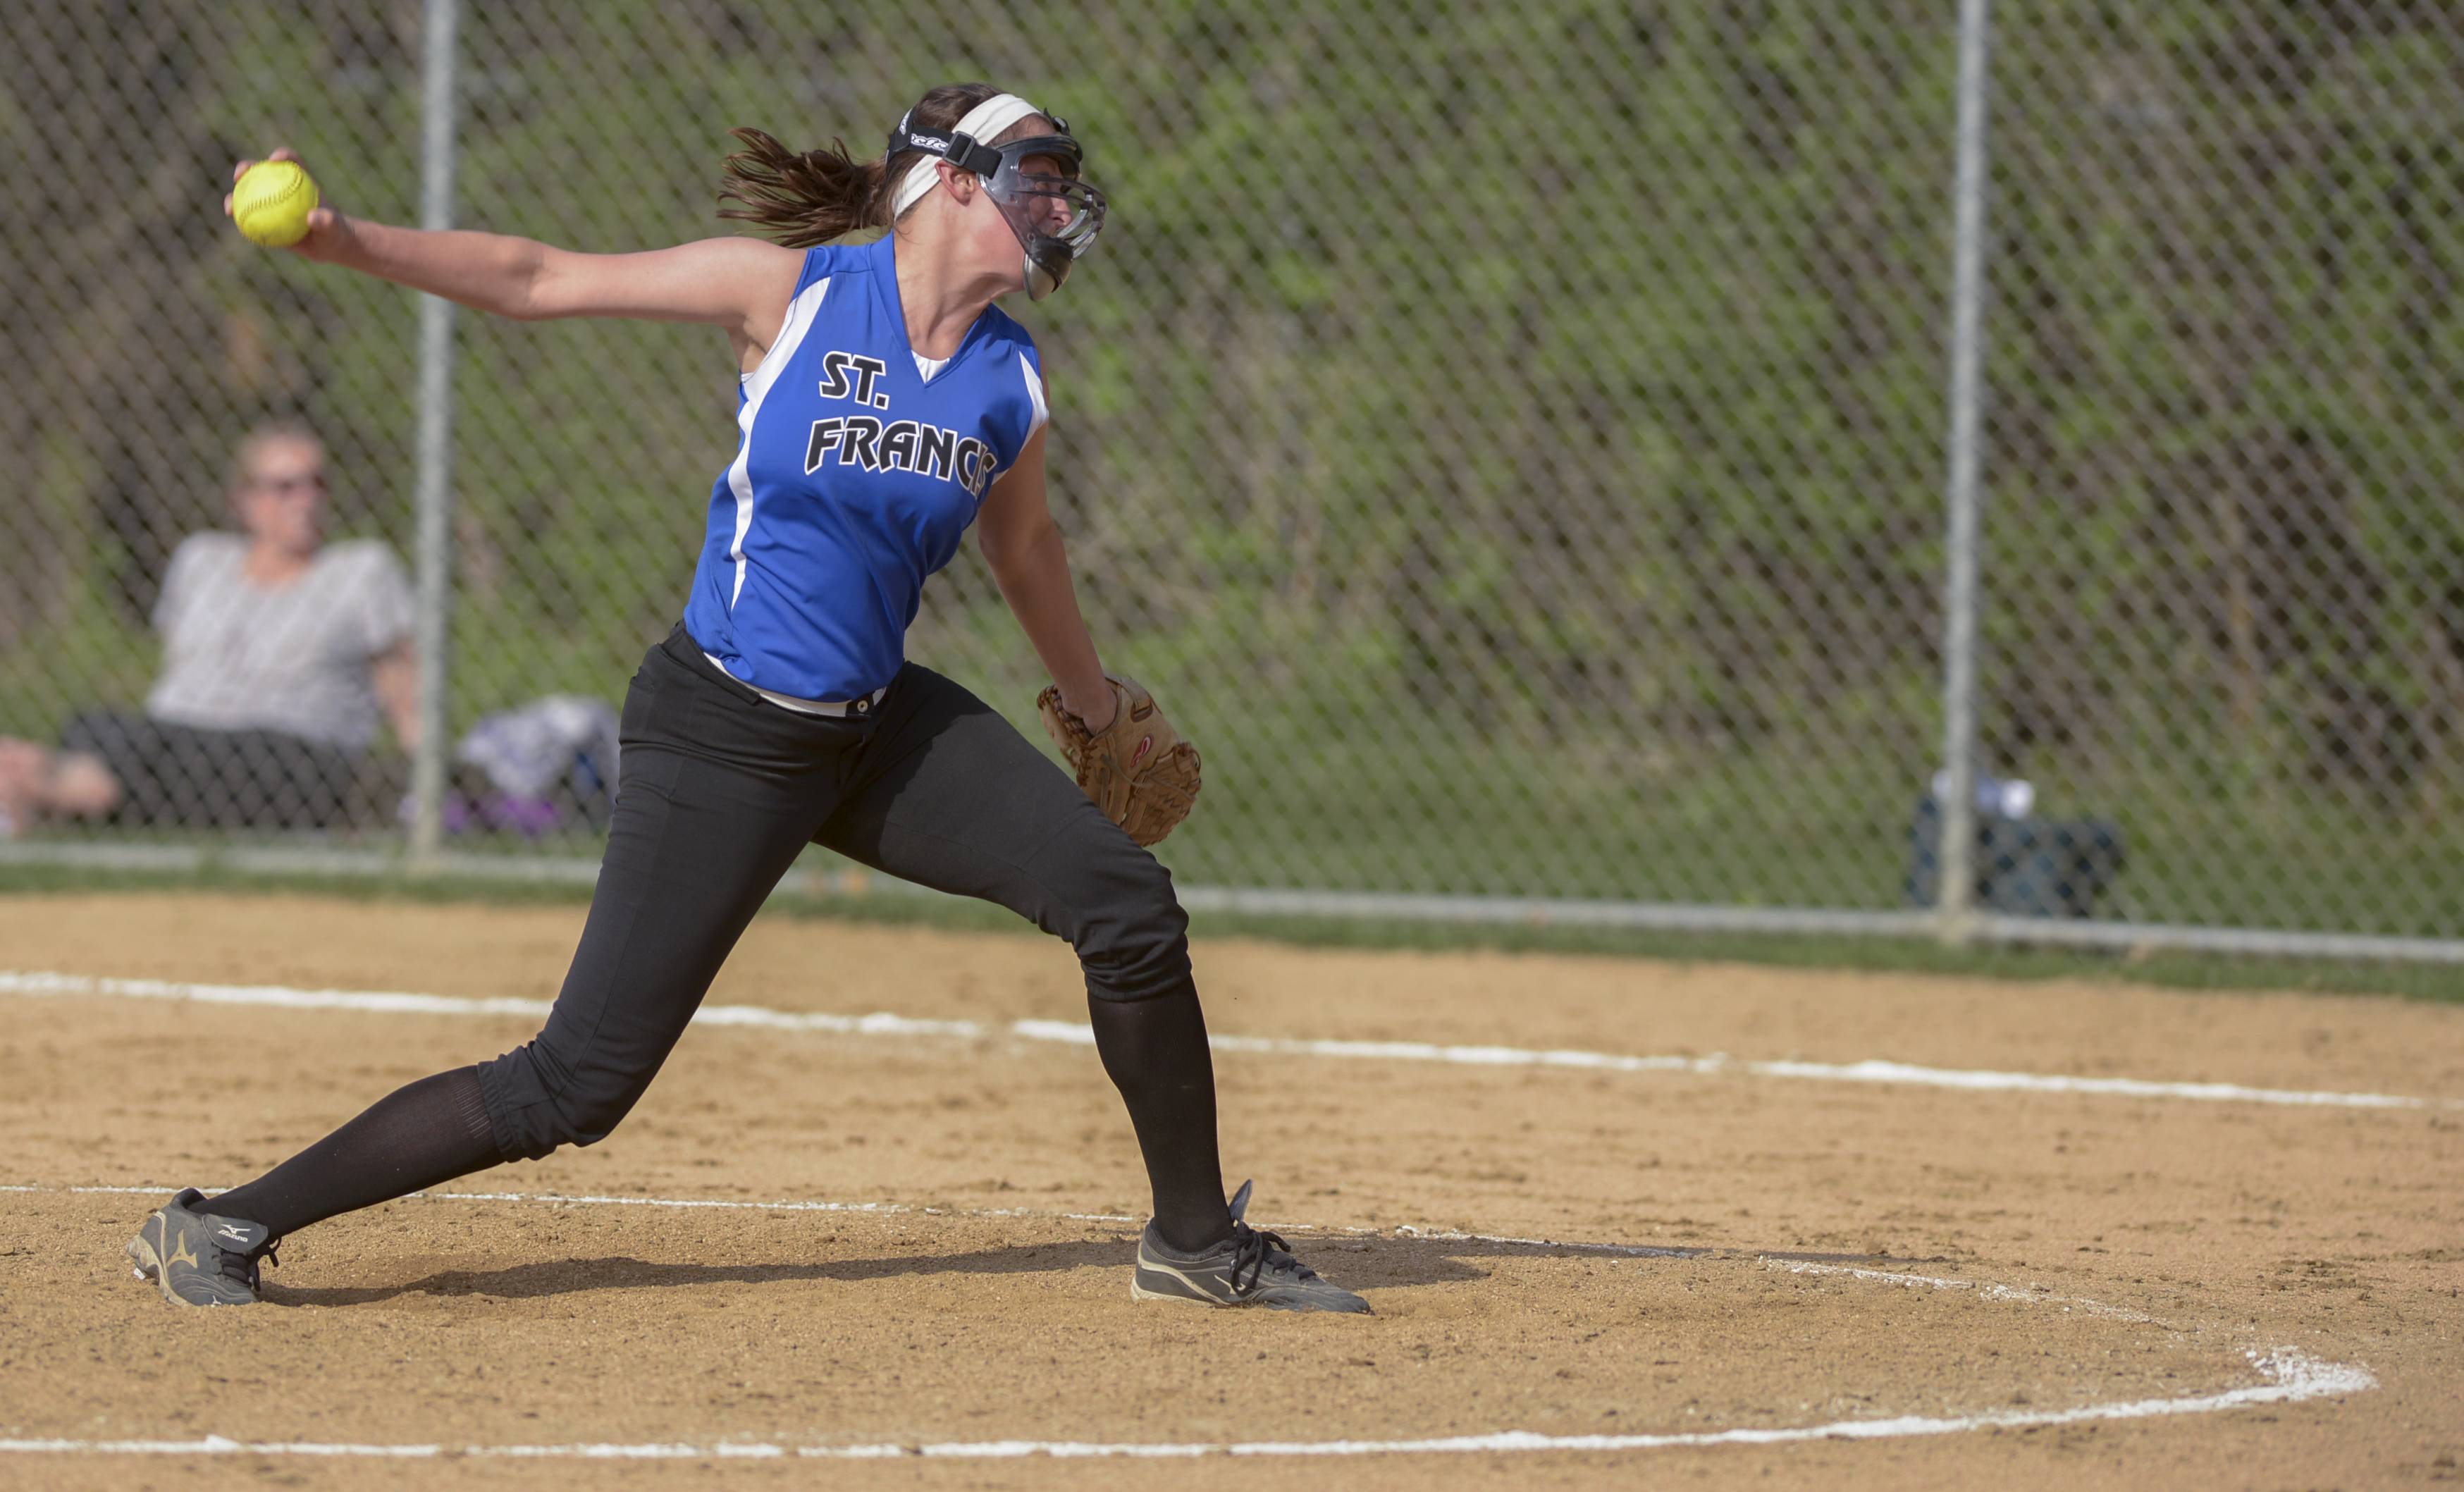 St. Francis' Maggie Remus pitches against Montini during softball action in Wheaton Thursday.